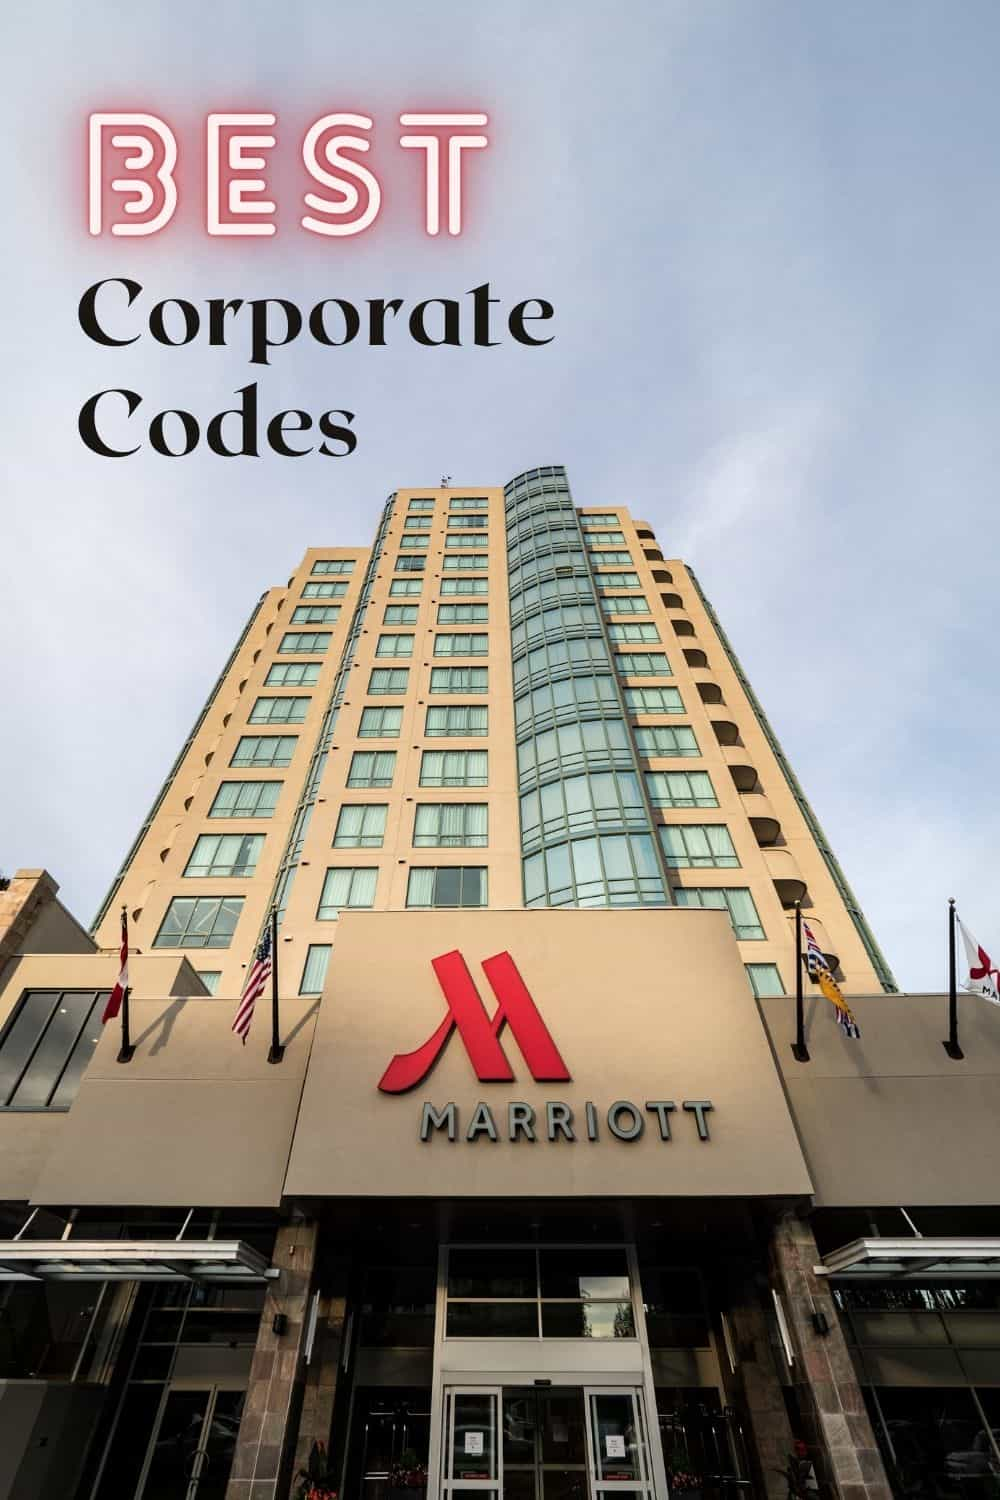 Marriott Corporate Codes - The Best Ones and How to Use Them